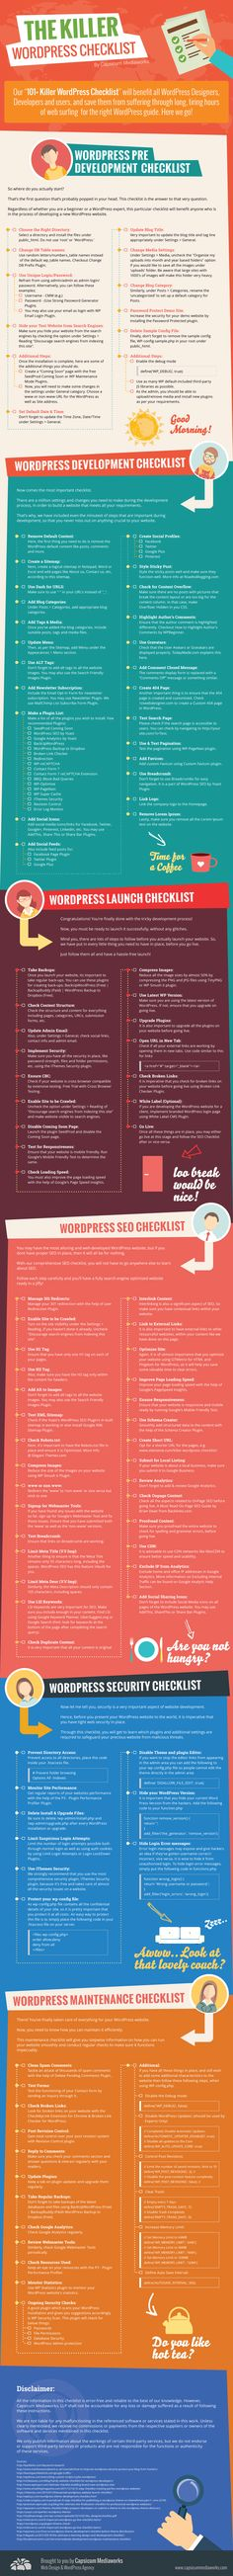 The Killer WordPress Checklist #infographic #Wordpress #Website #WebDevelopment